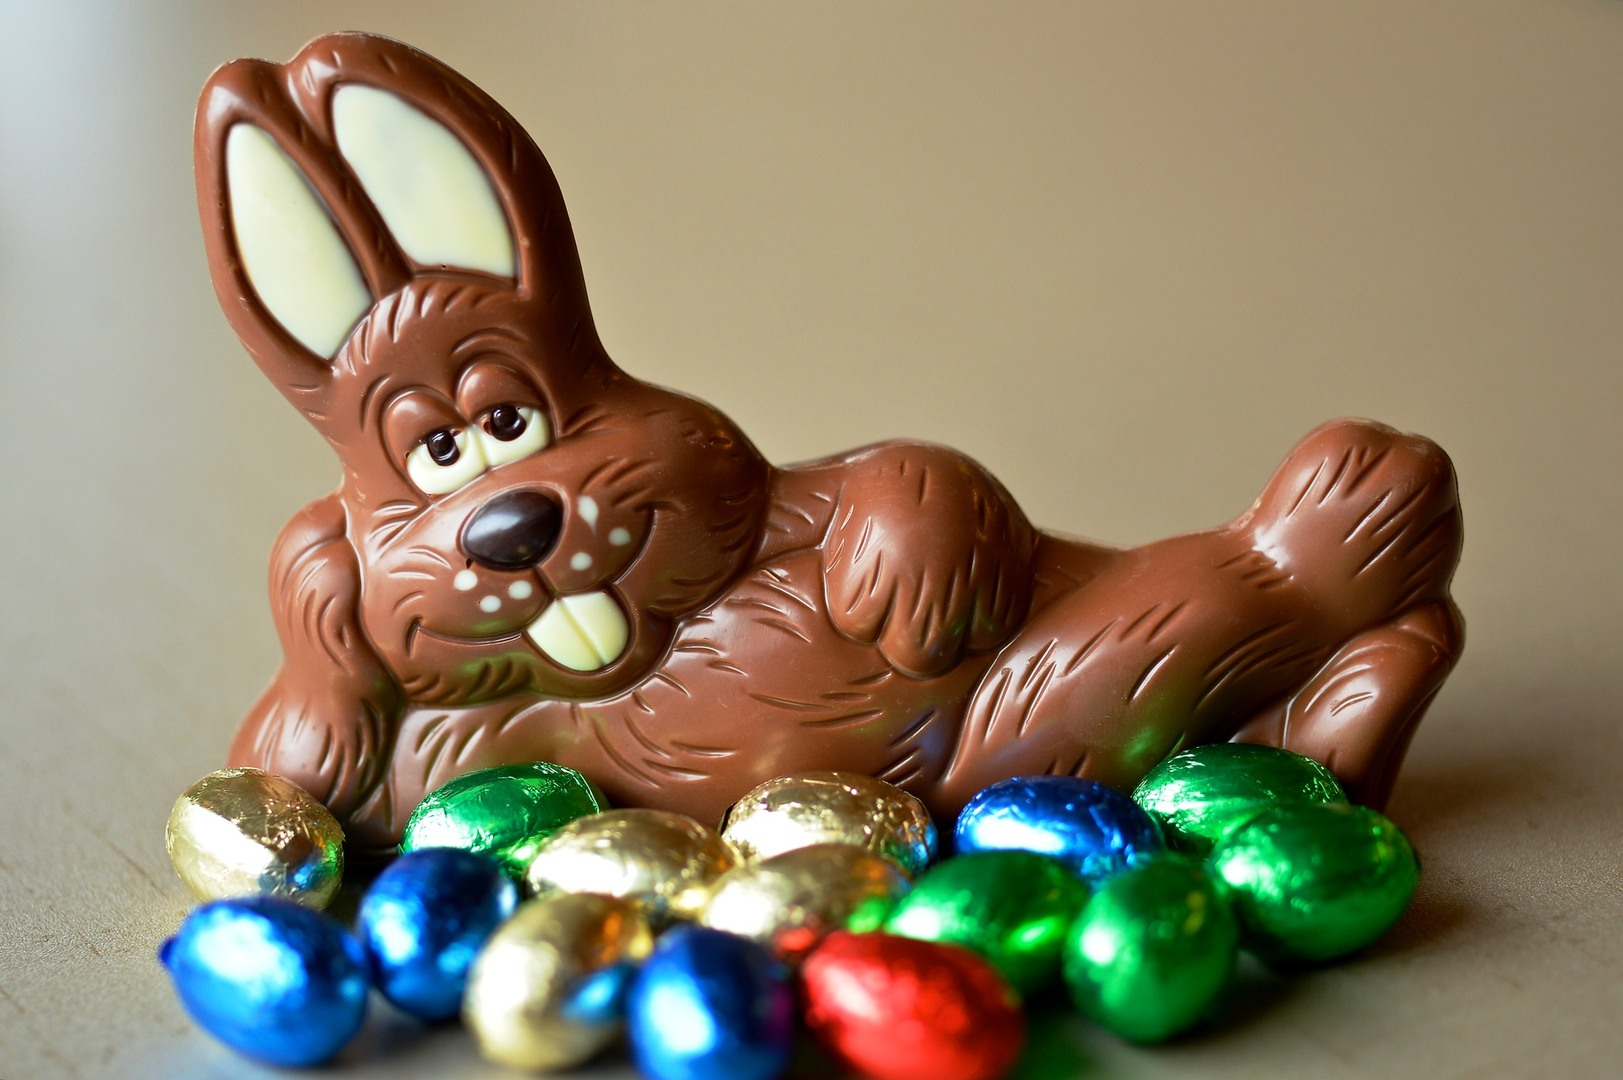 Download 'chocolate easter bunny' HD wallpaper